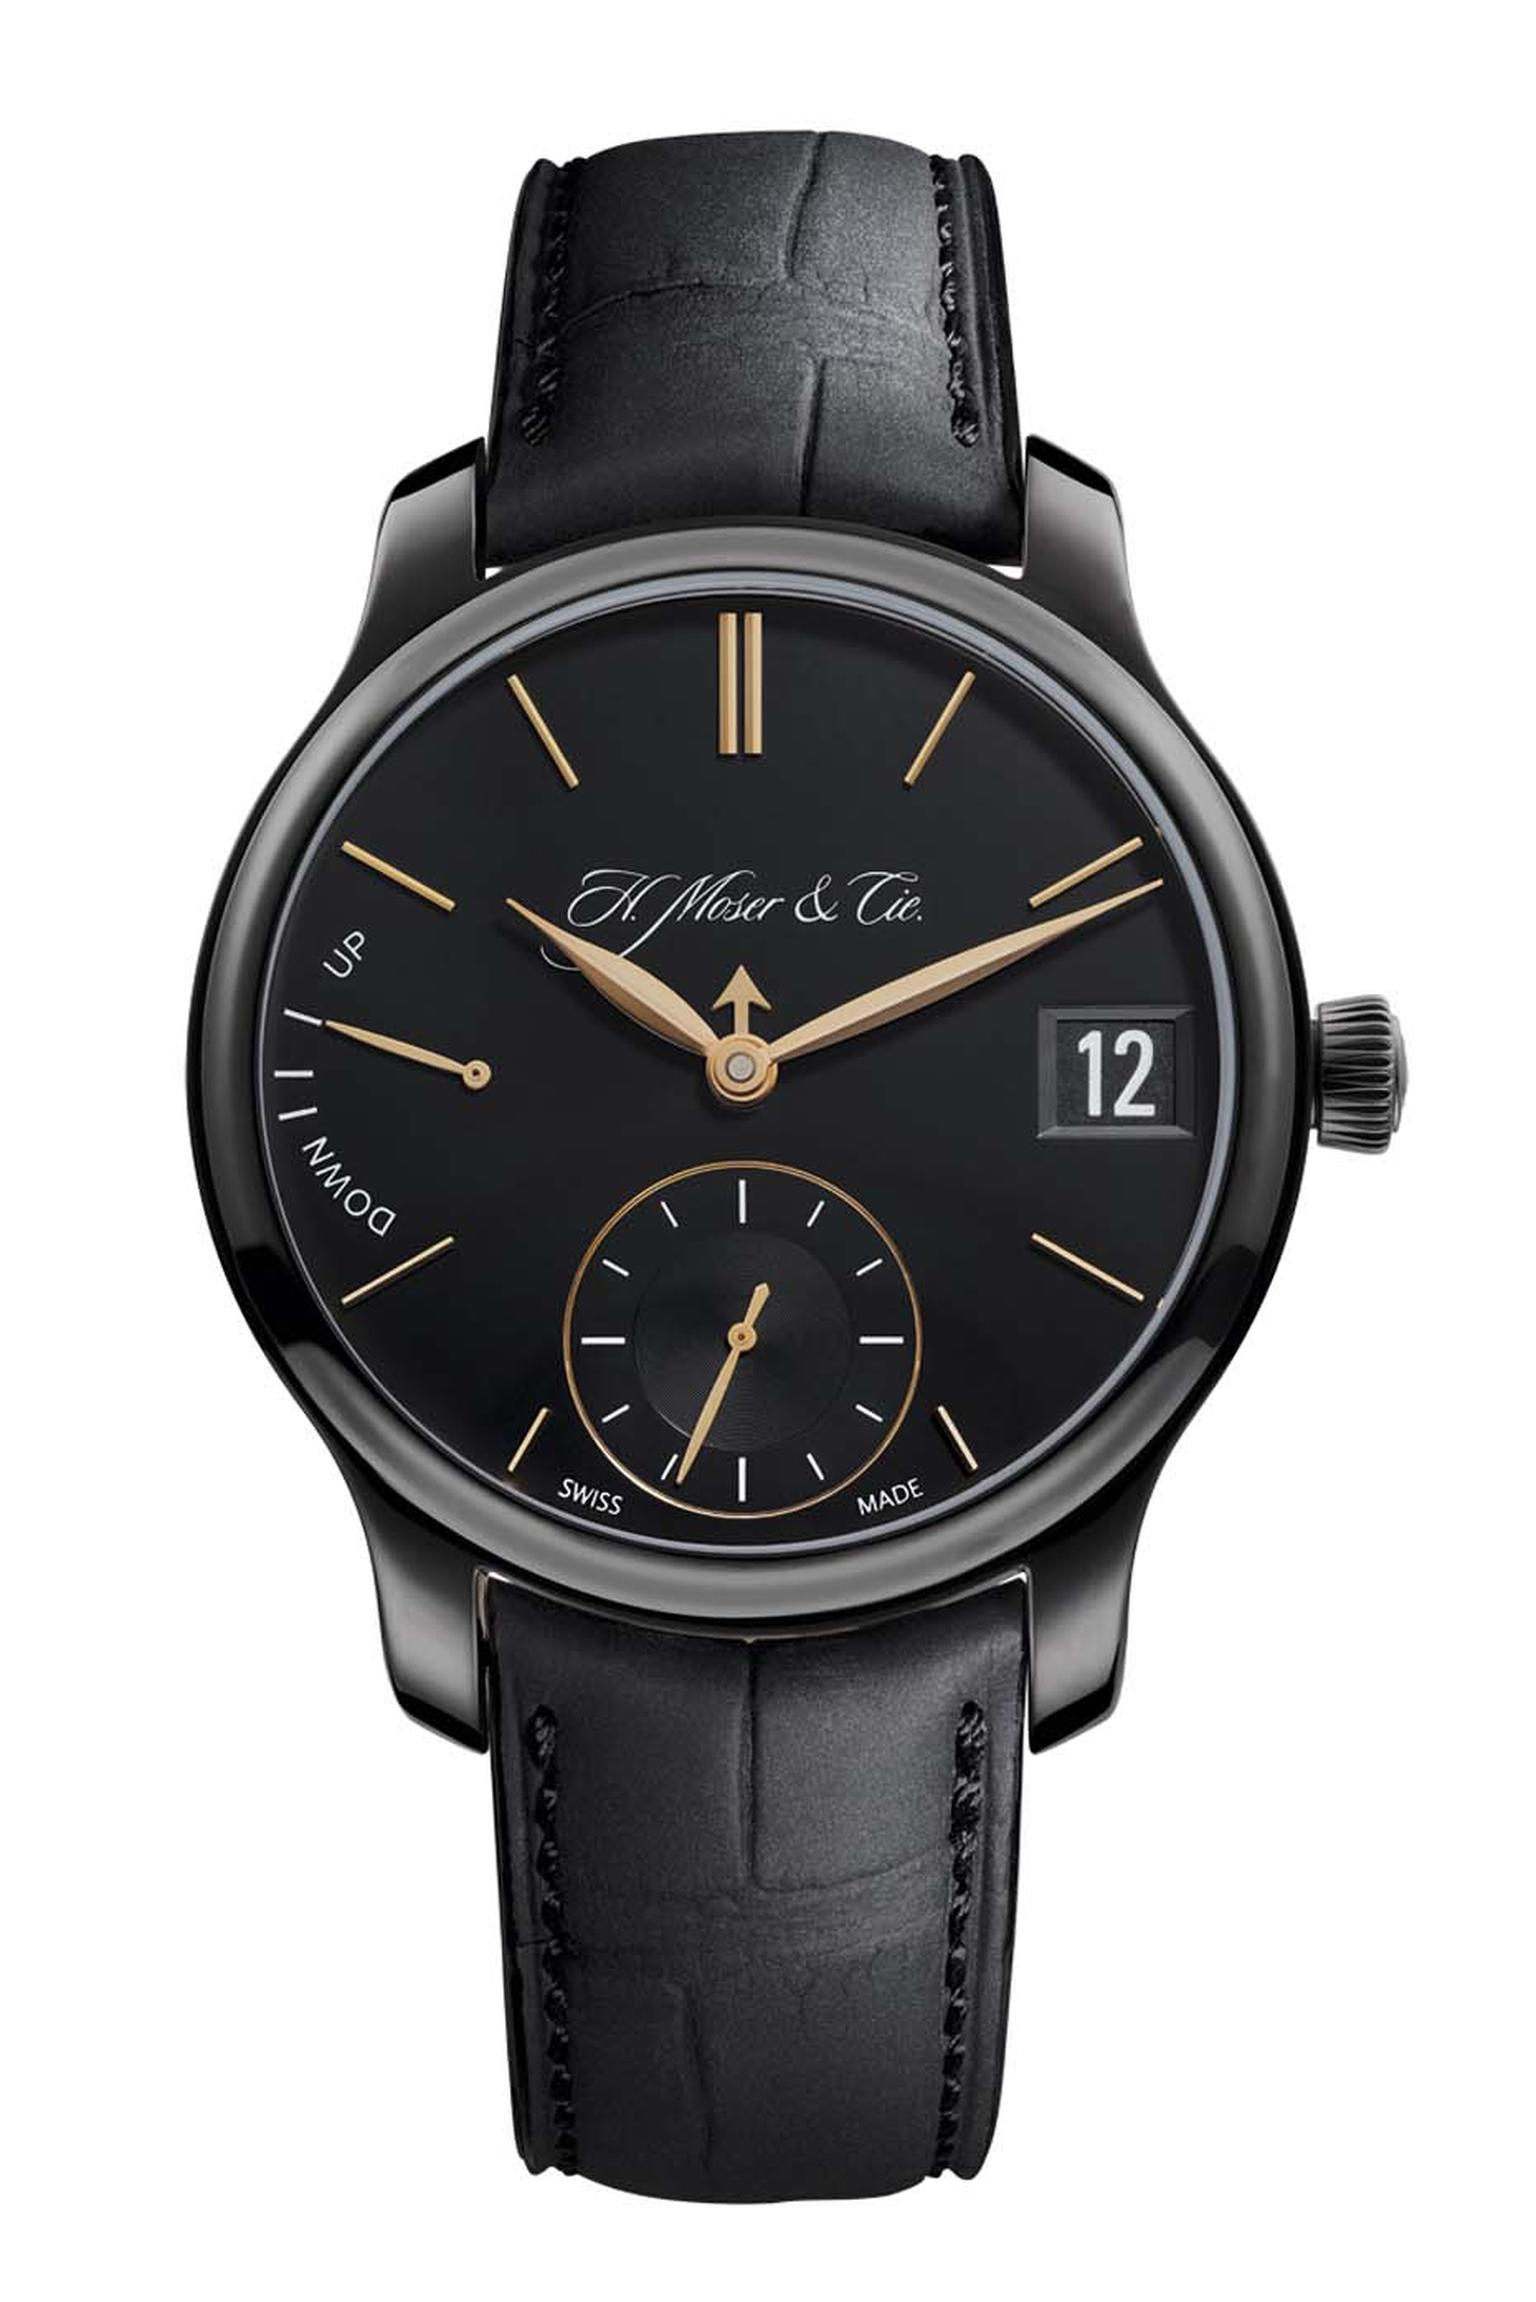 The date window, small seconds and 7-day power reserve functions are easy to spot on the H. Moser & Cie Perpetual Calendar Black Edition watch, whereas the month is ingeniously indicated by a little arrow-shaped hand and the leap-year indication appears o